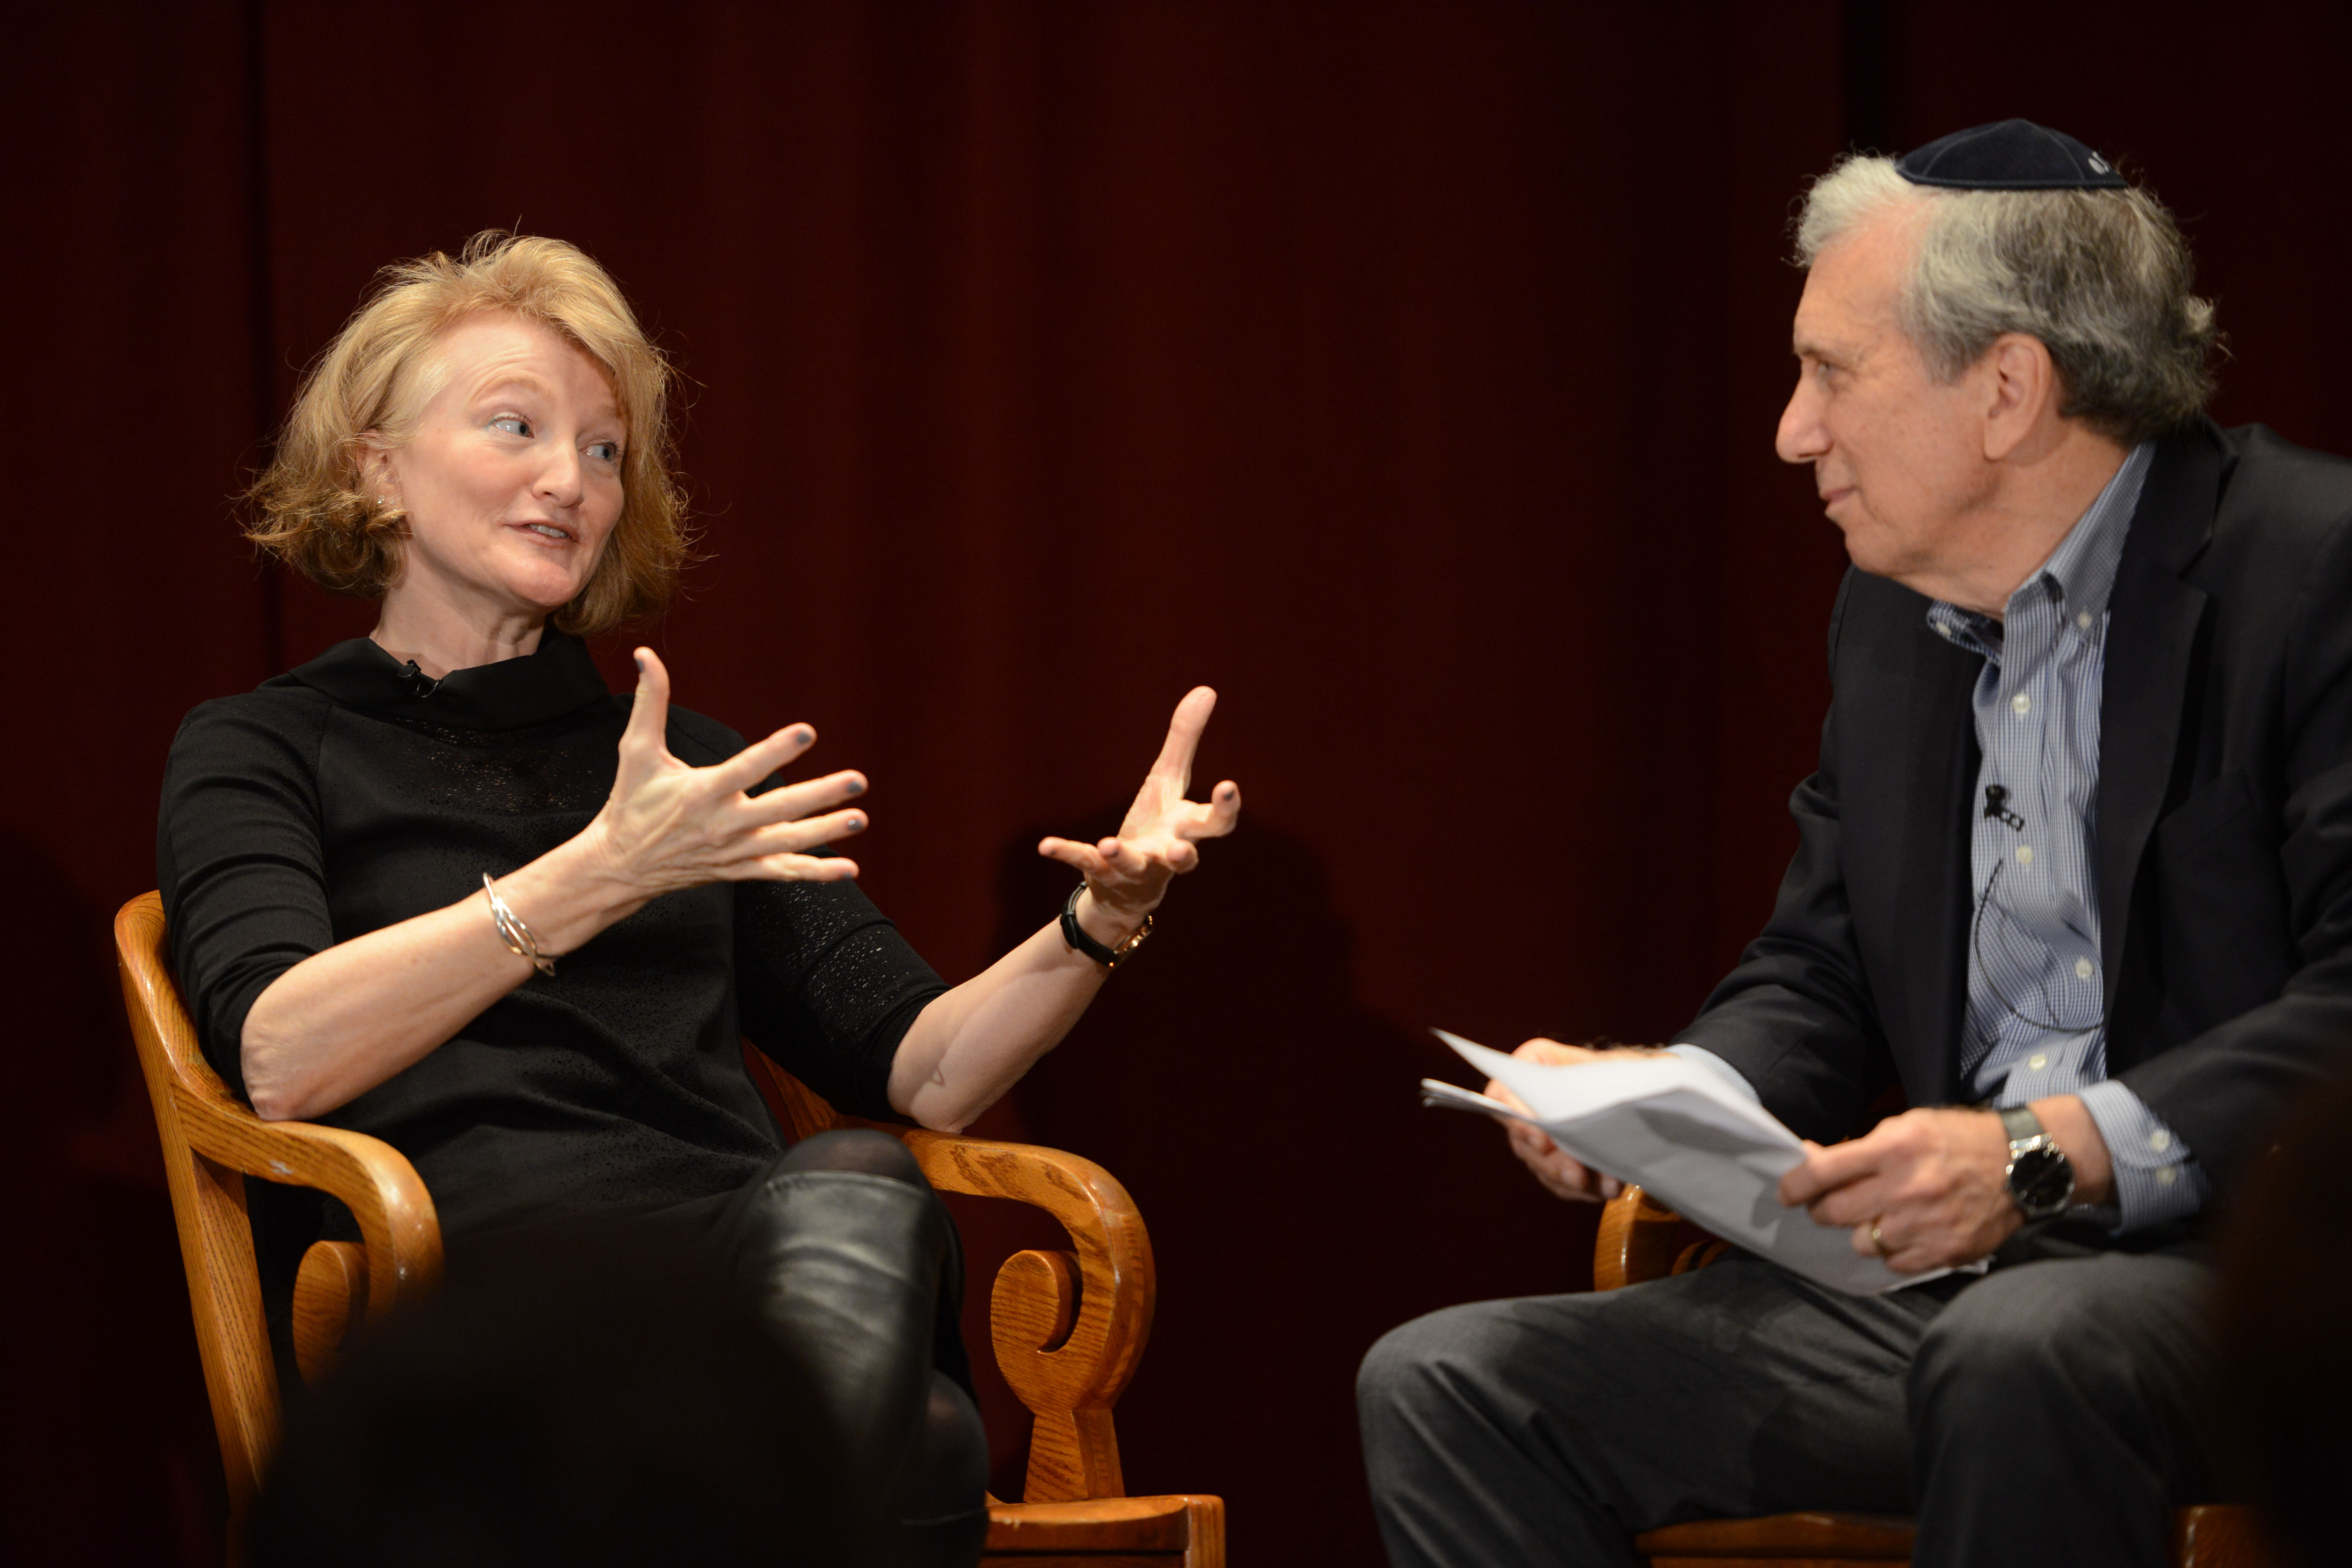 Krista Tippett and Covenant Board member Dr. Arnold M. Eisen, Chancellor of The Jewish Theological Seminary.